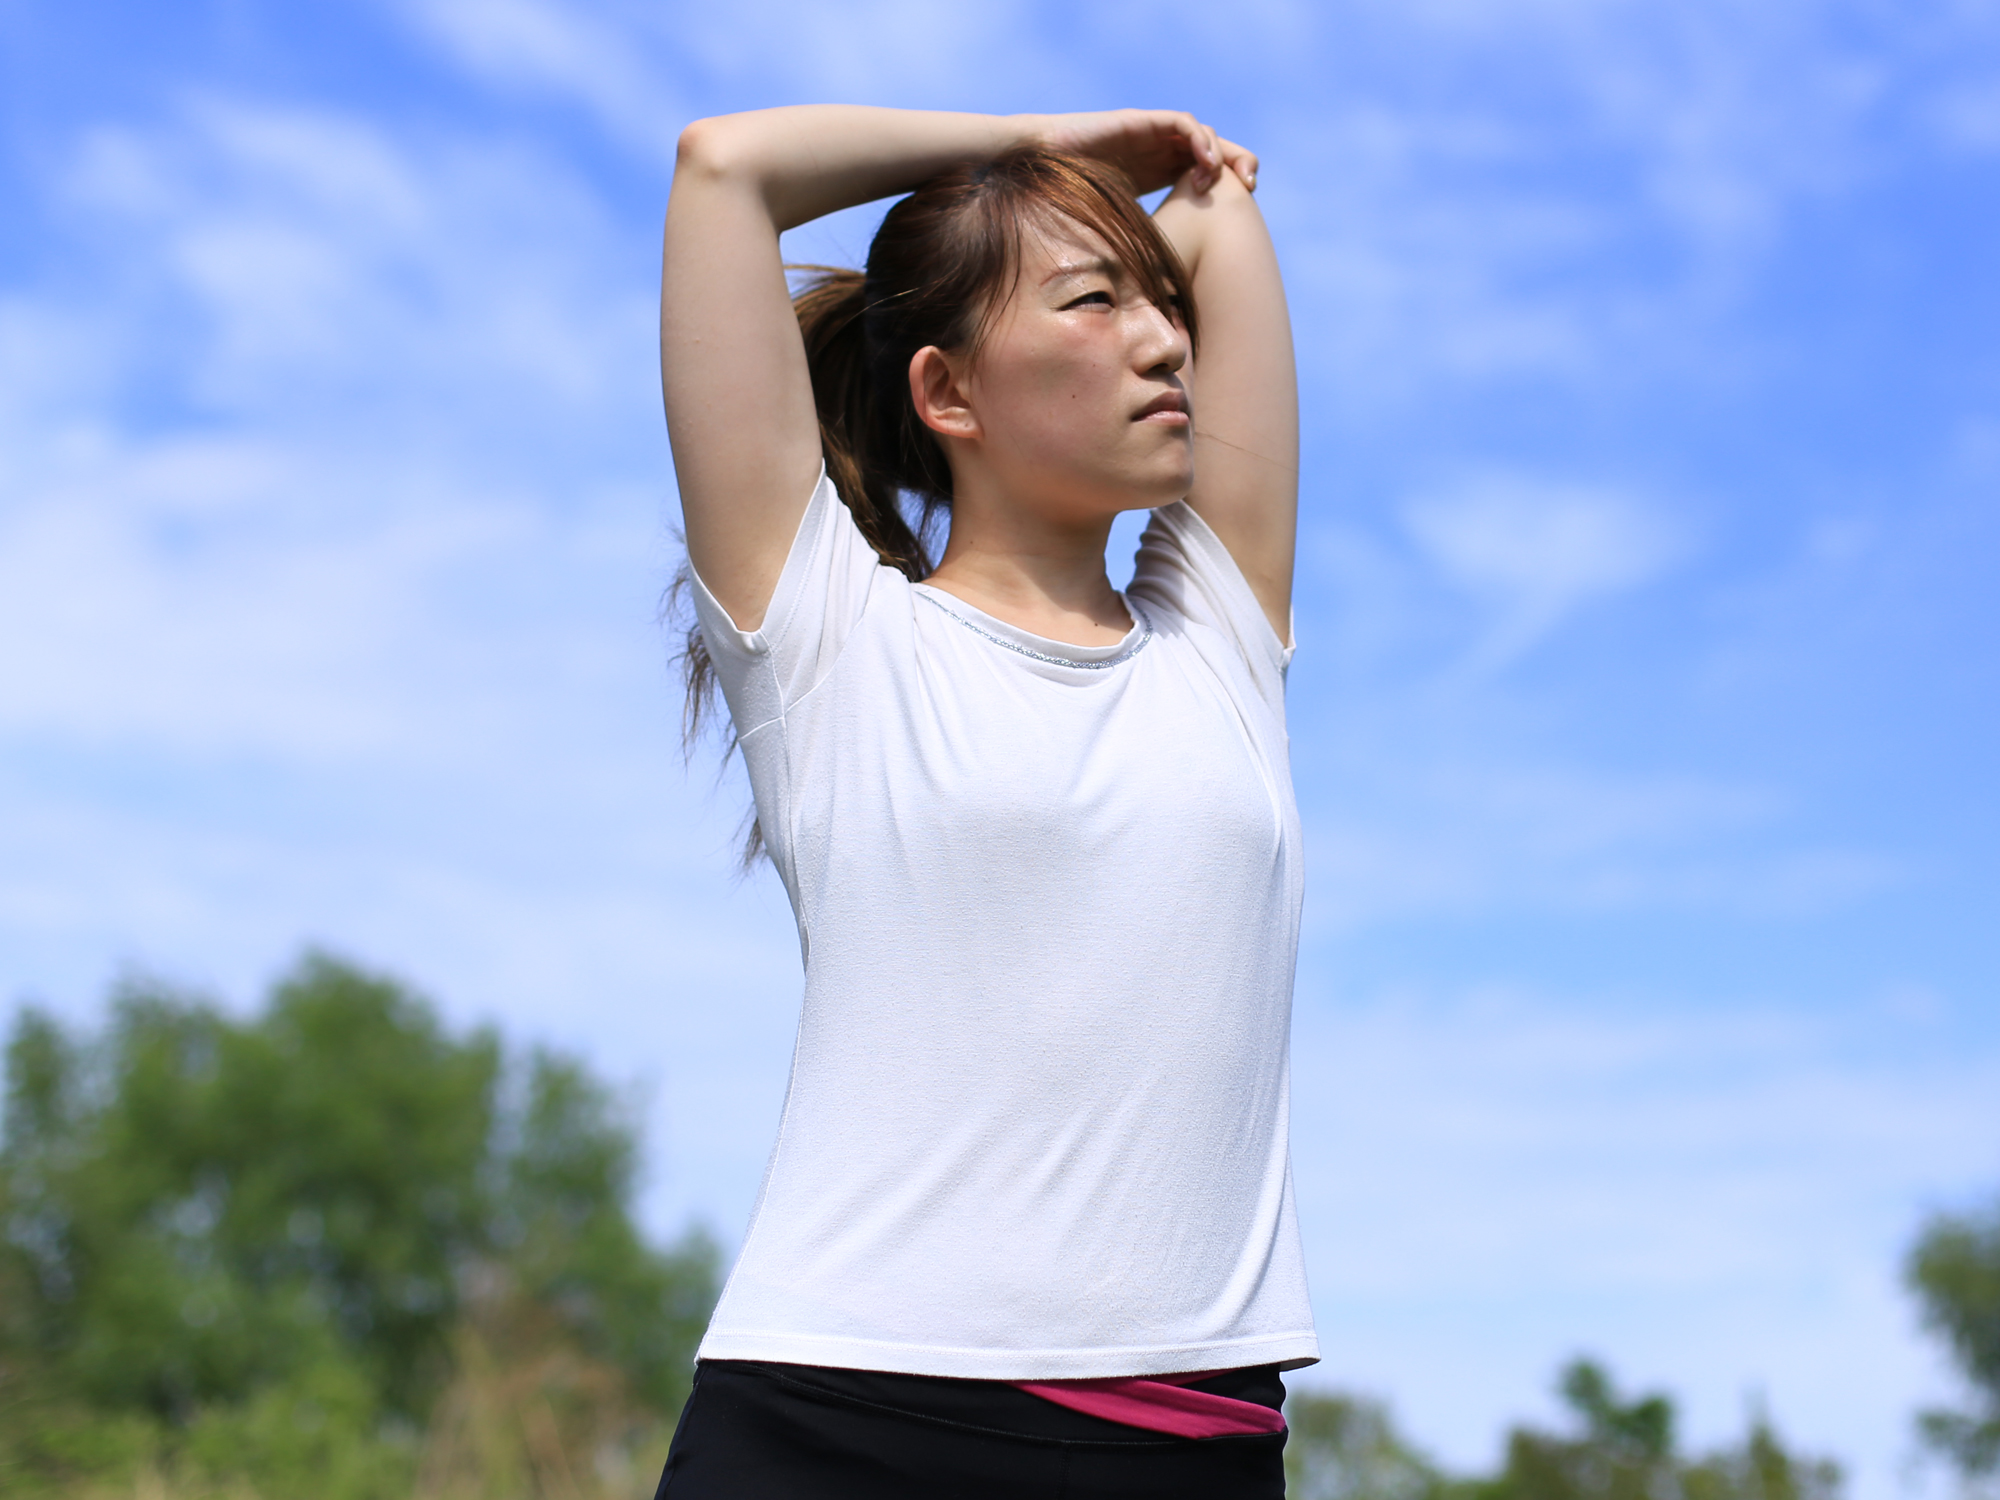 Posture trick for a strong back and tight tummy